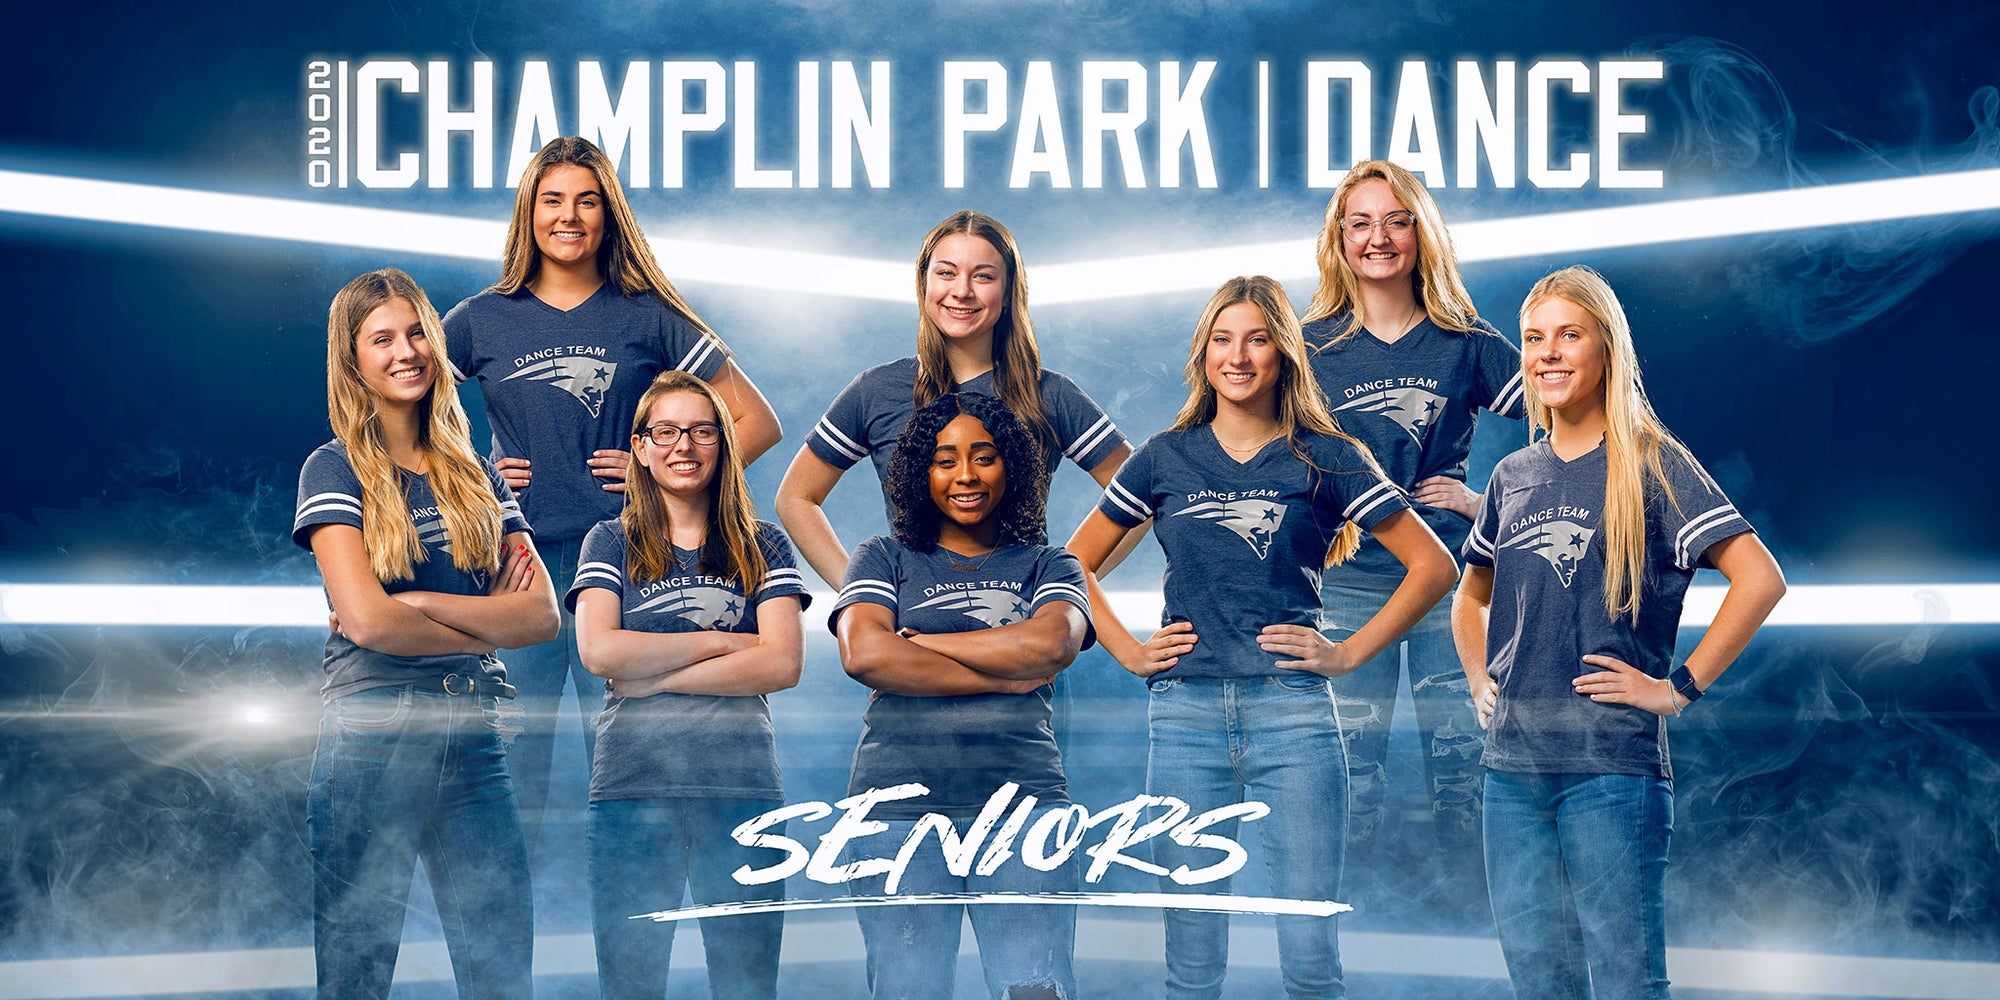 Champlin Park Dance 2020 Behind-the Scenes Photoshoot